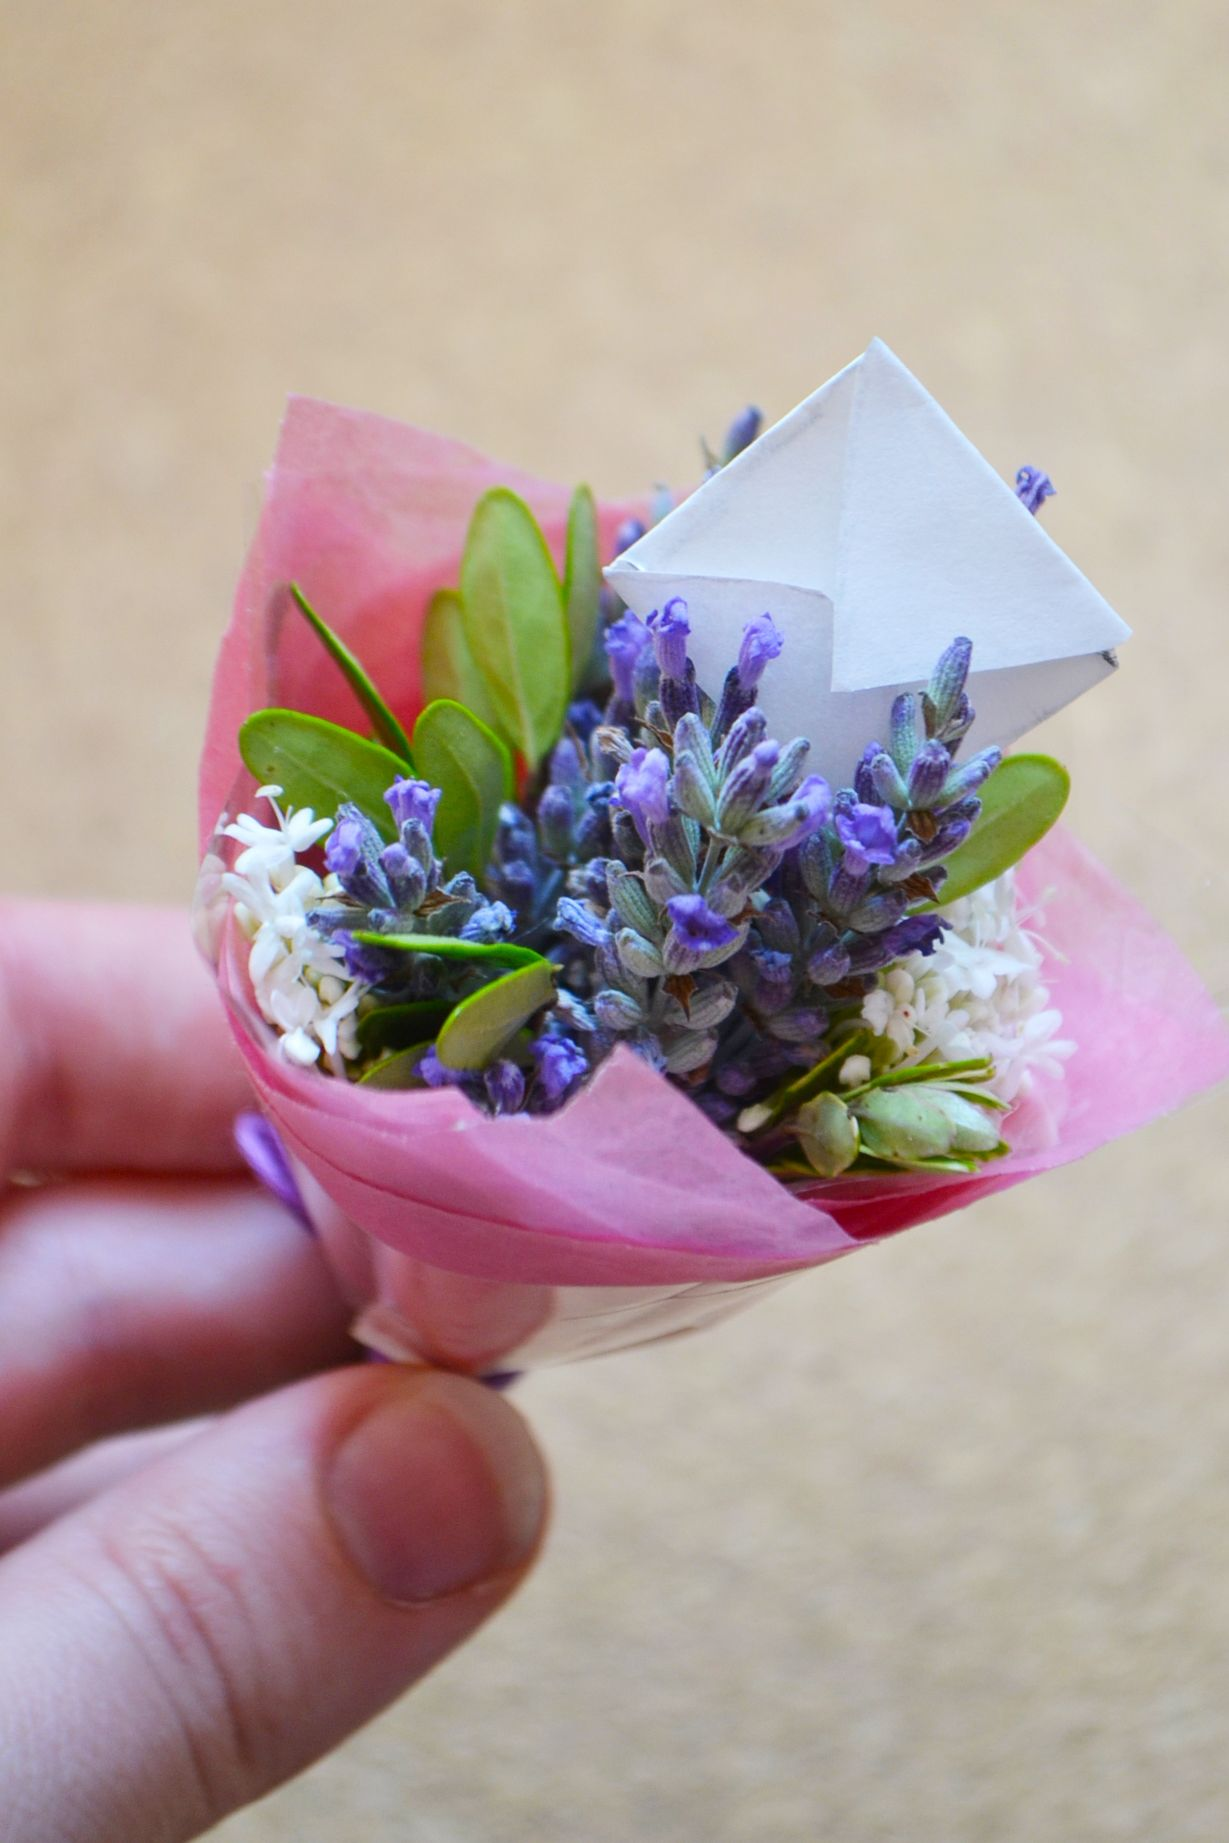 Diy miniature bouquets lll plants for miniature gardens mini bouquets a cute gift idea thats quick easy and cheap to make izmirmasajfo